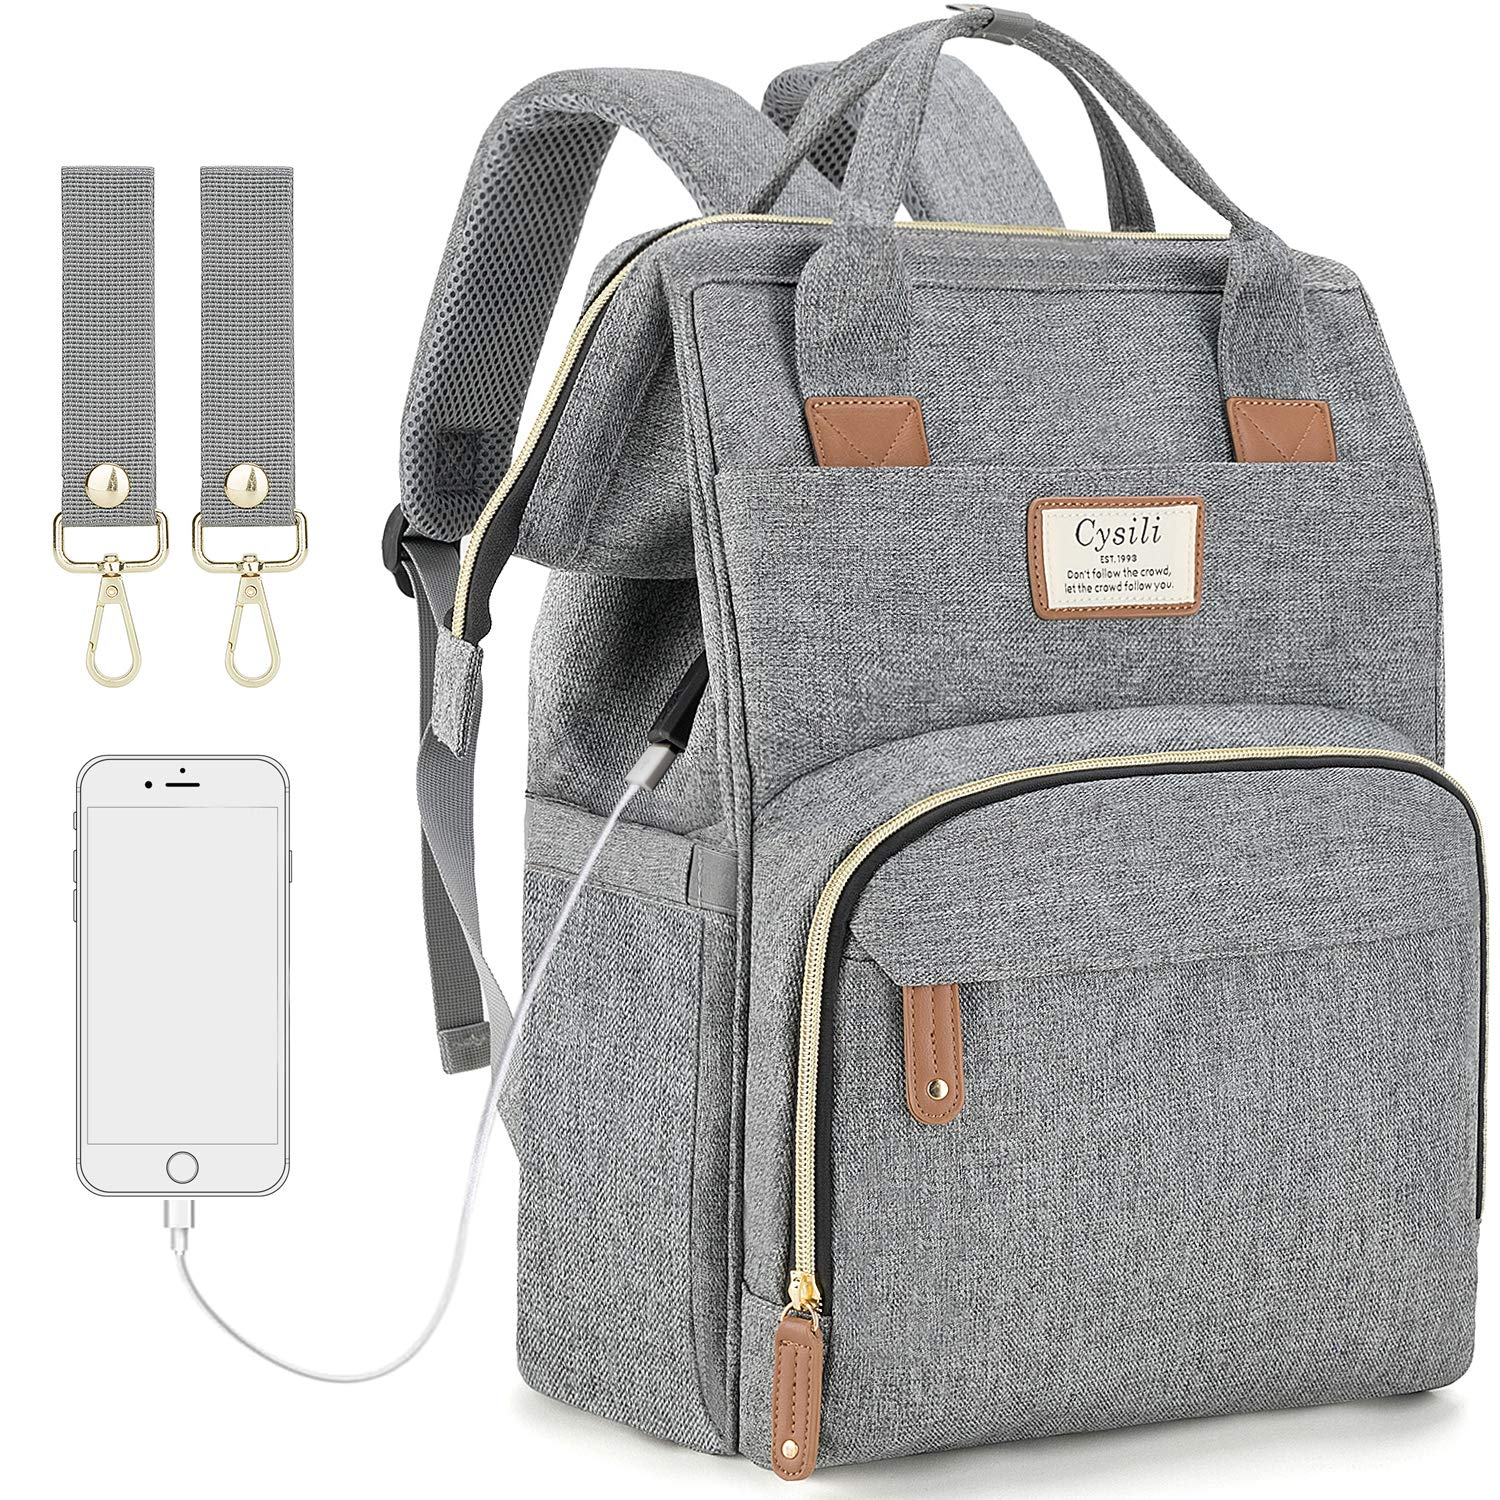 Diaper Bag Backpack with USB Charging Port and Stroller Straps, Maternity Nappy Bag with Insulated Feeding Bottle Pocket by FANCYOUT